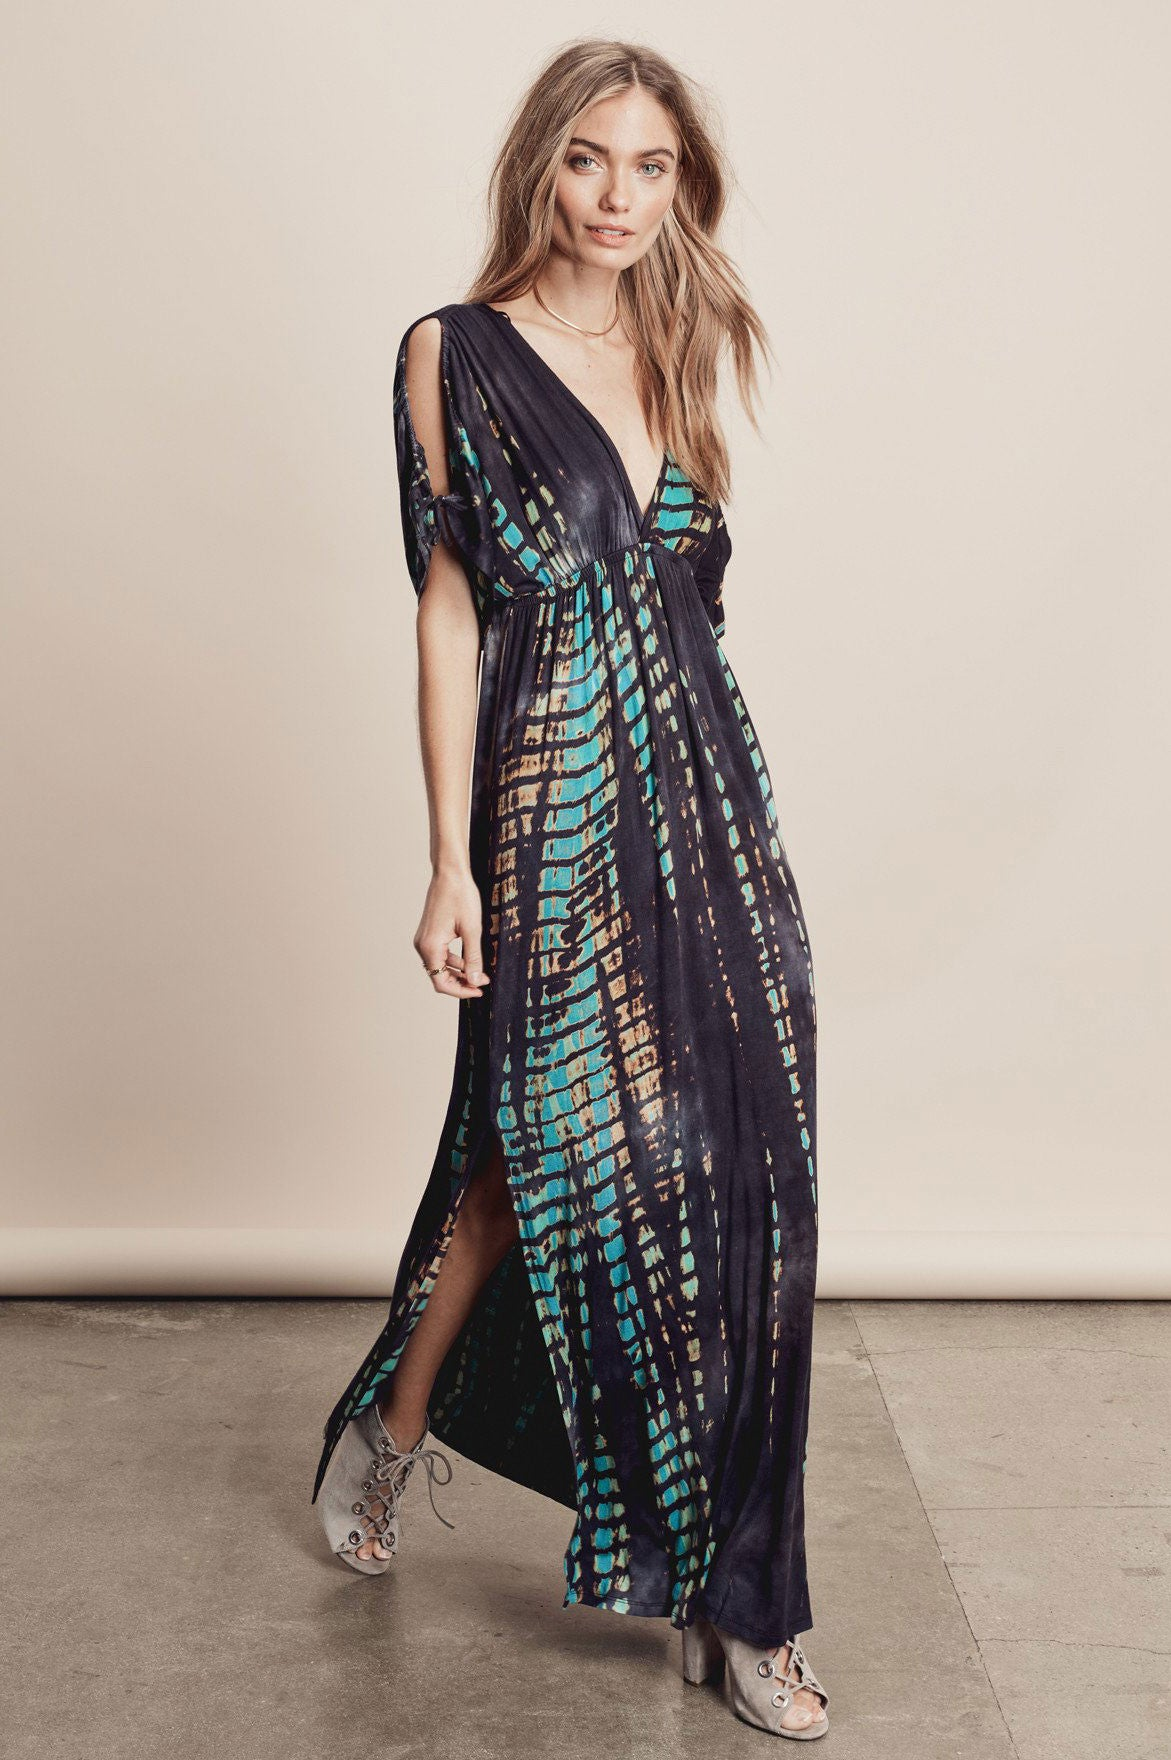 Womens short sleeve deep v-neck tie-dye boho long-maxi dress. Black & green print